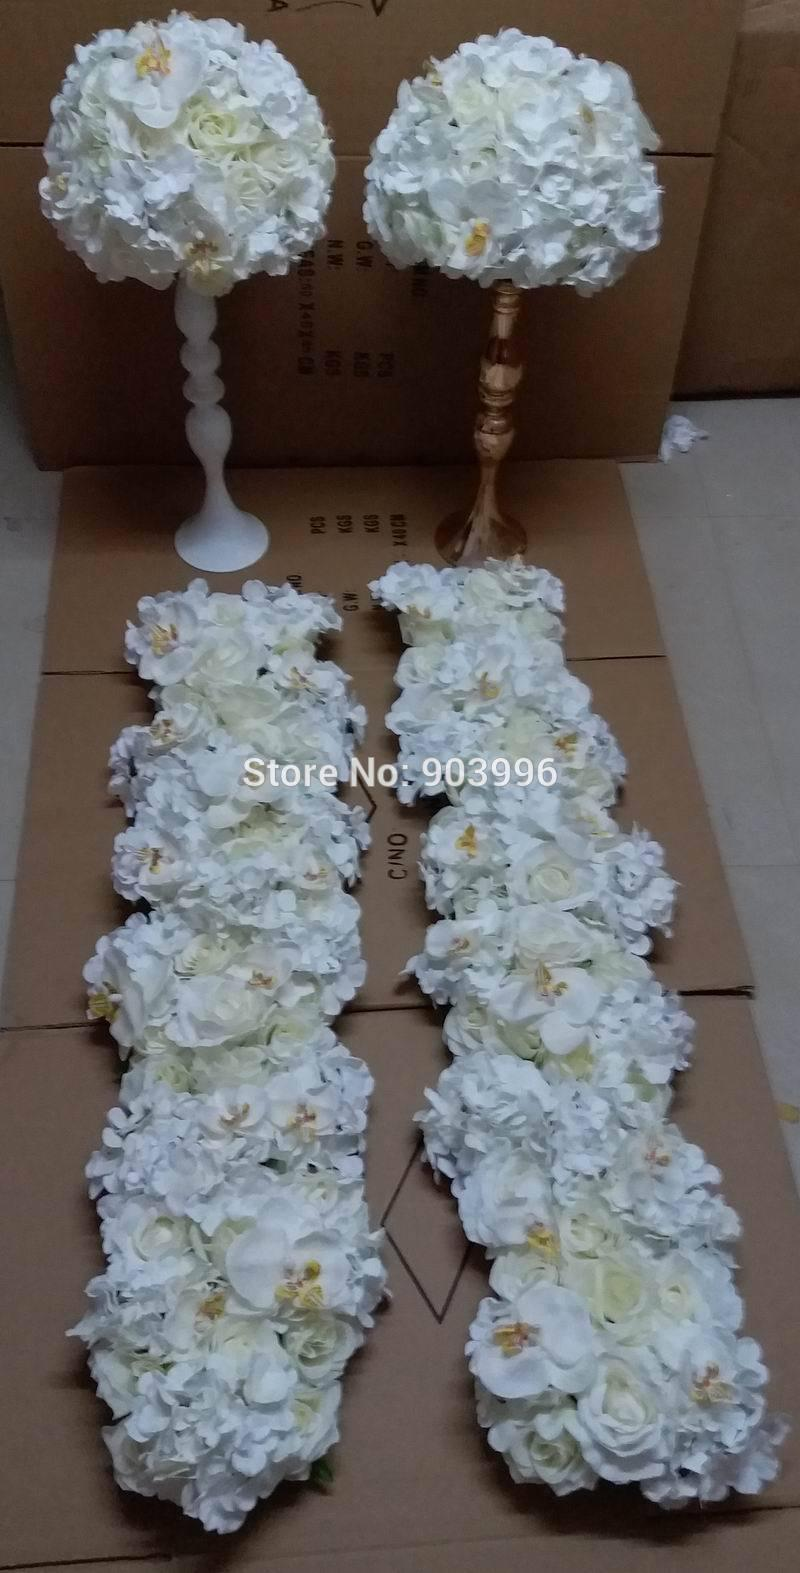 f930a10dc5f59 Wedding Road Lead Flowers Candlestick Table Centerpiece Flower Ball with  Butterfly Flowers Decoratios Diyartificial Flowerswedding Decoration Online  with ...